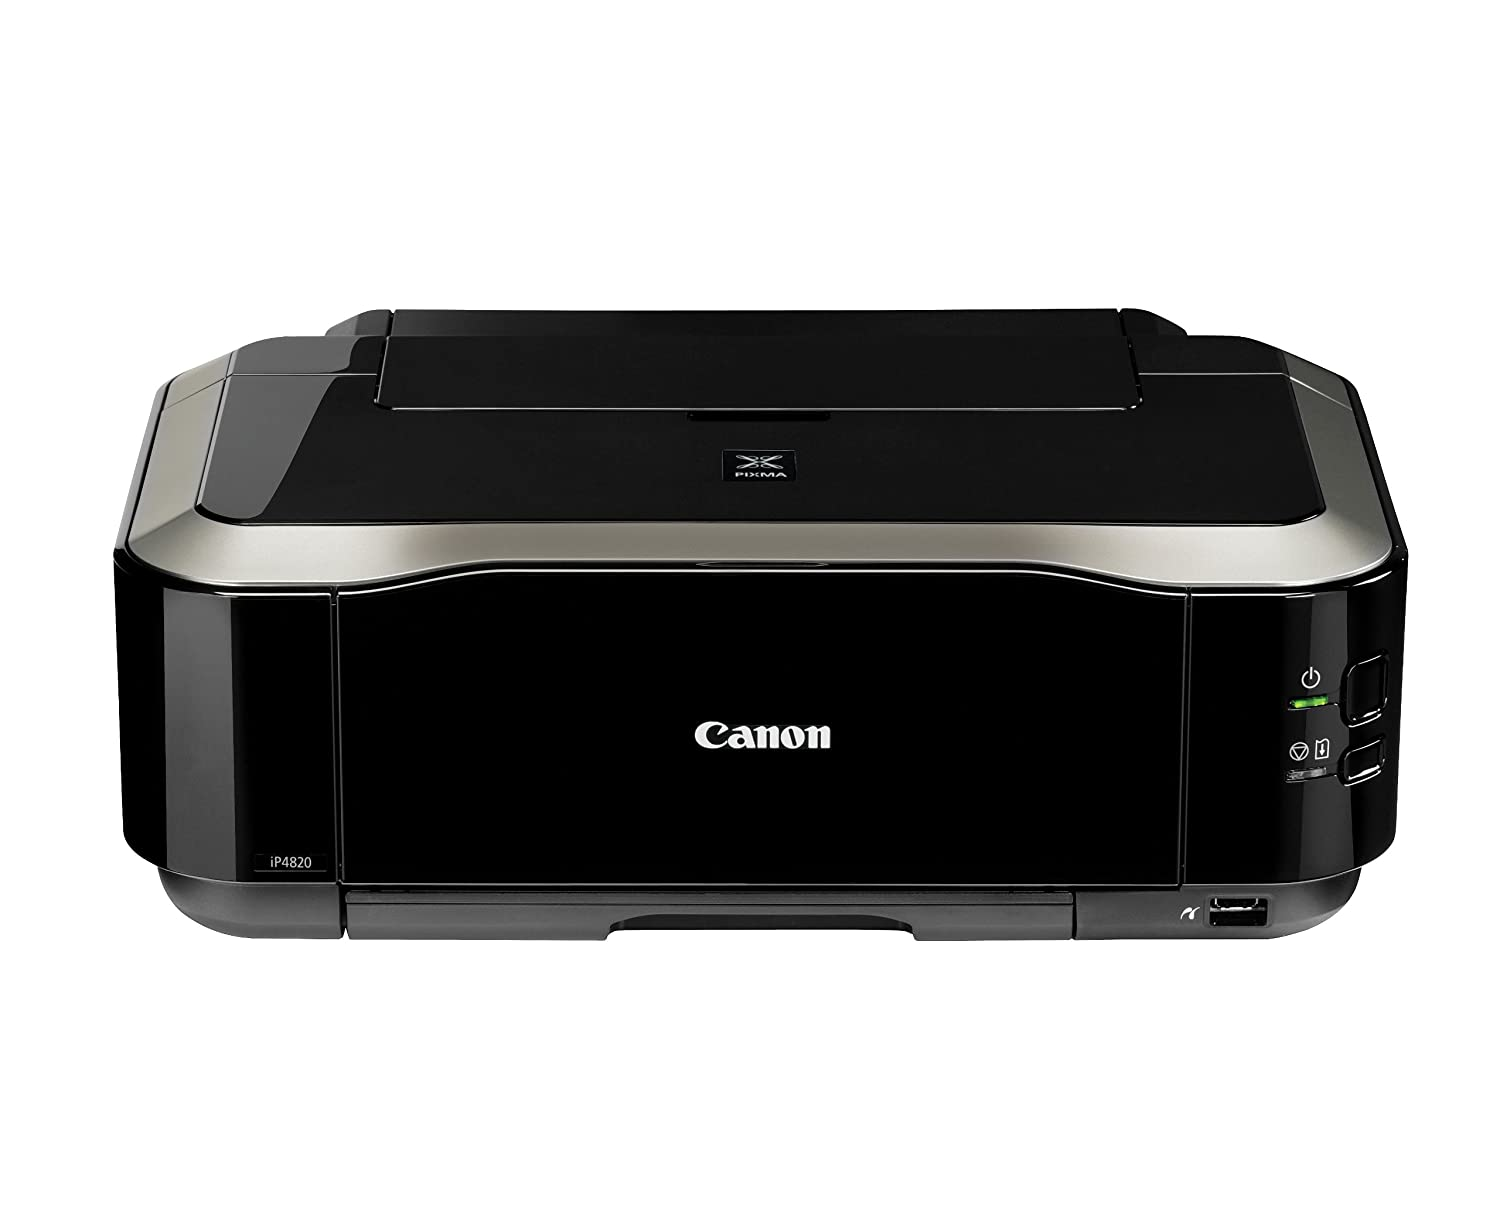 CANON IP4820 DRIVER FOR MAC